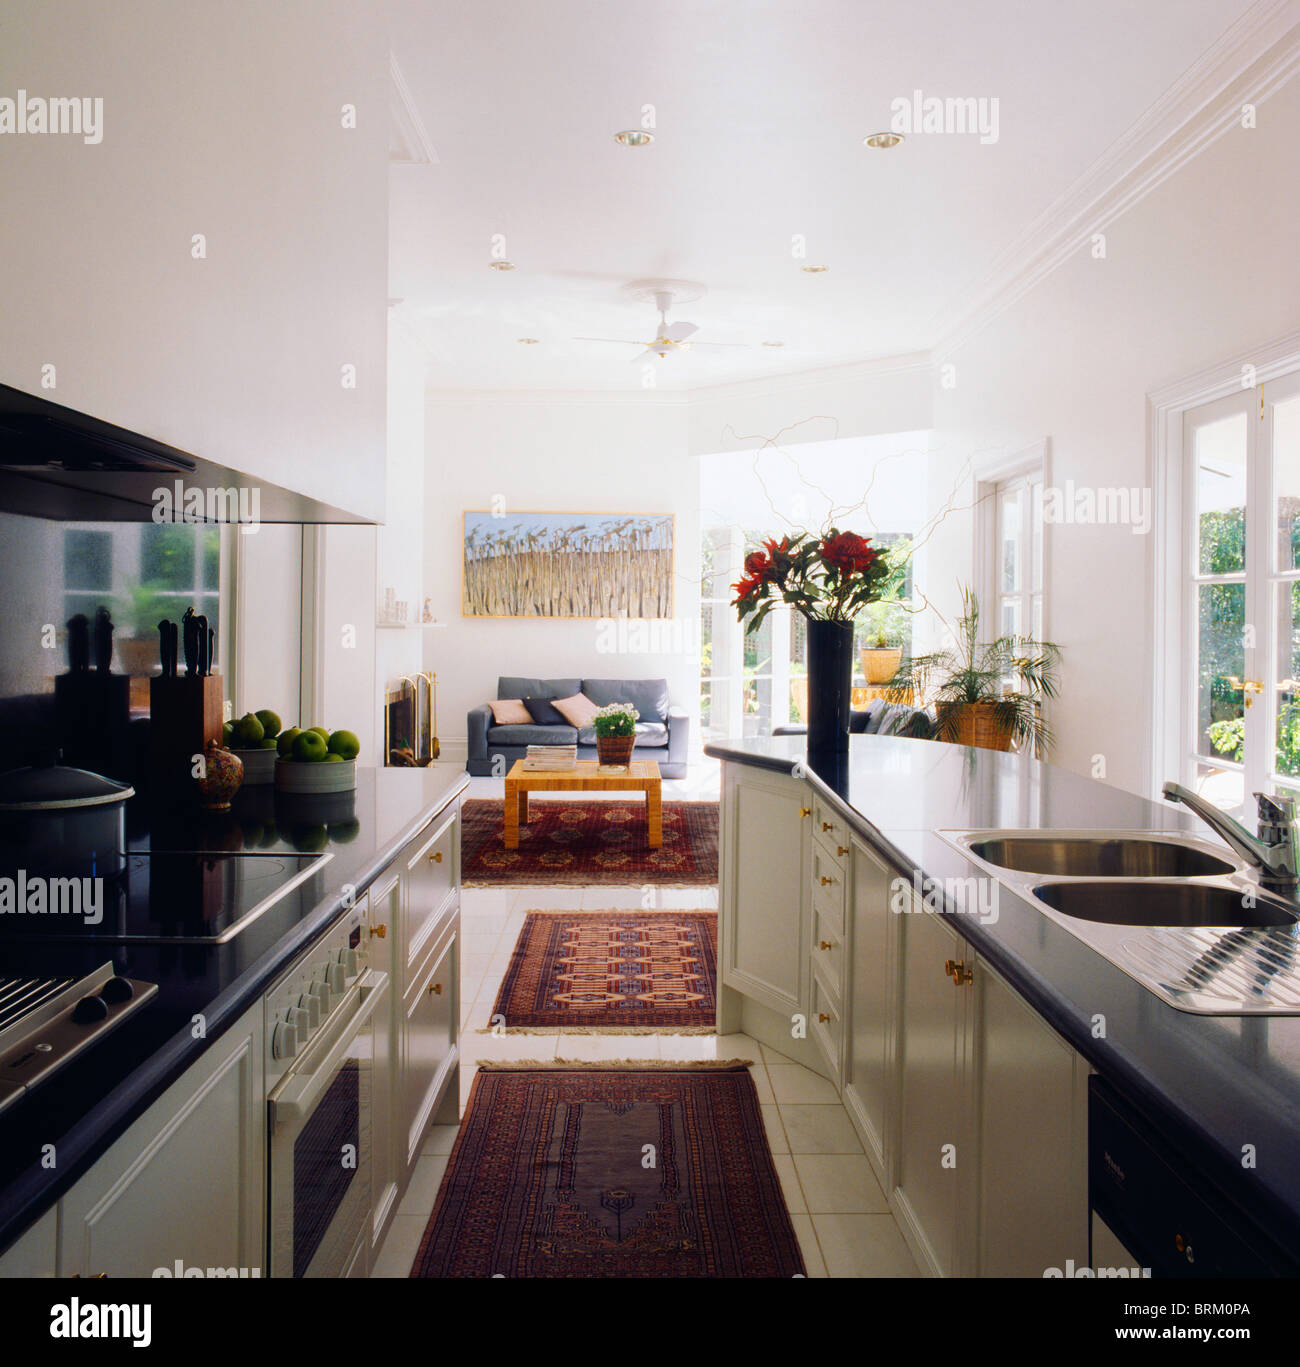 Rugs on floor in open-plan white galley kitchen with black ...